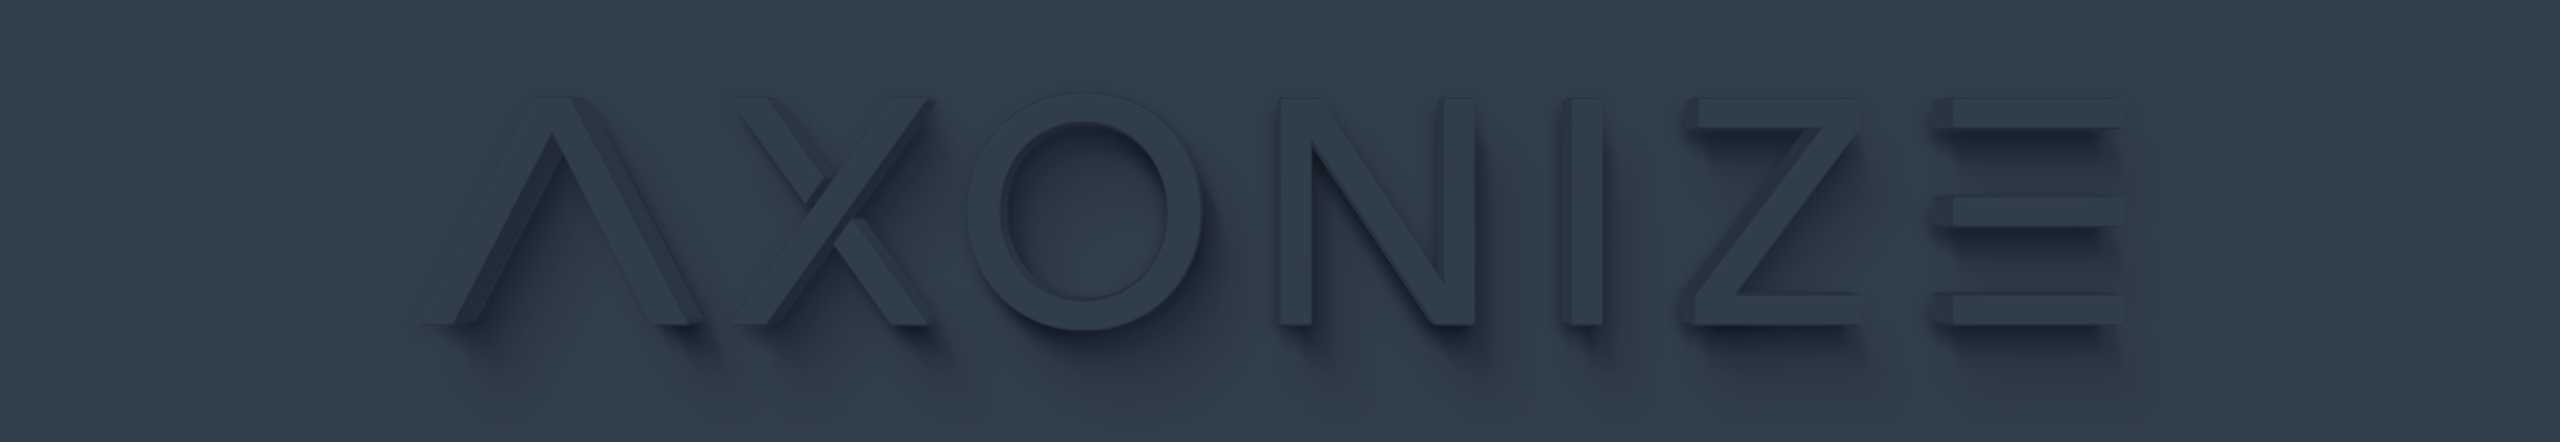 Axonize dark logo